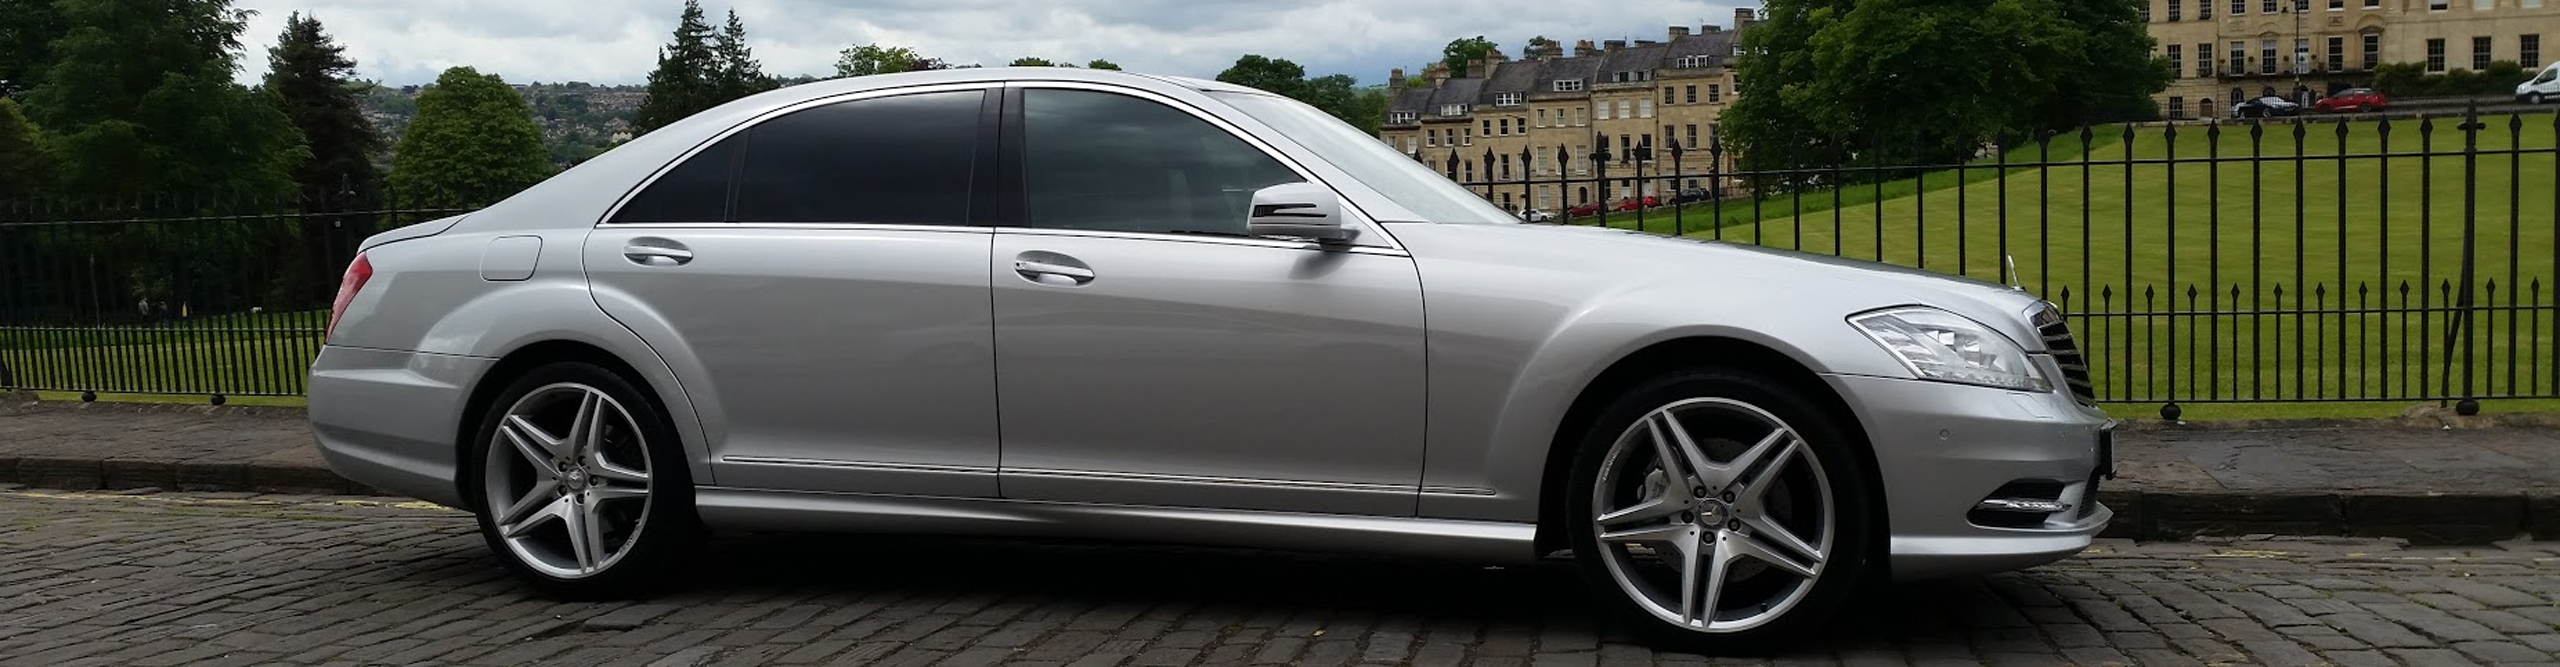 Bath Chauffeur Driven Mercedes